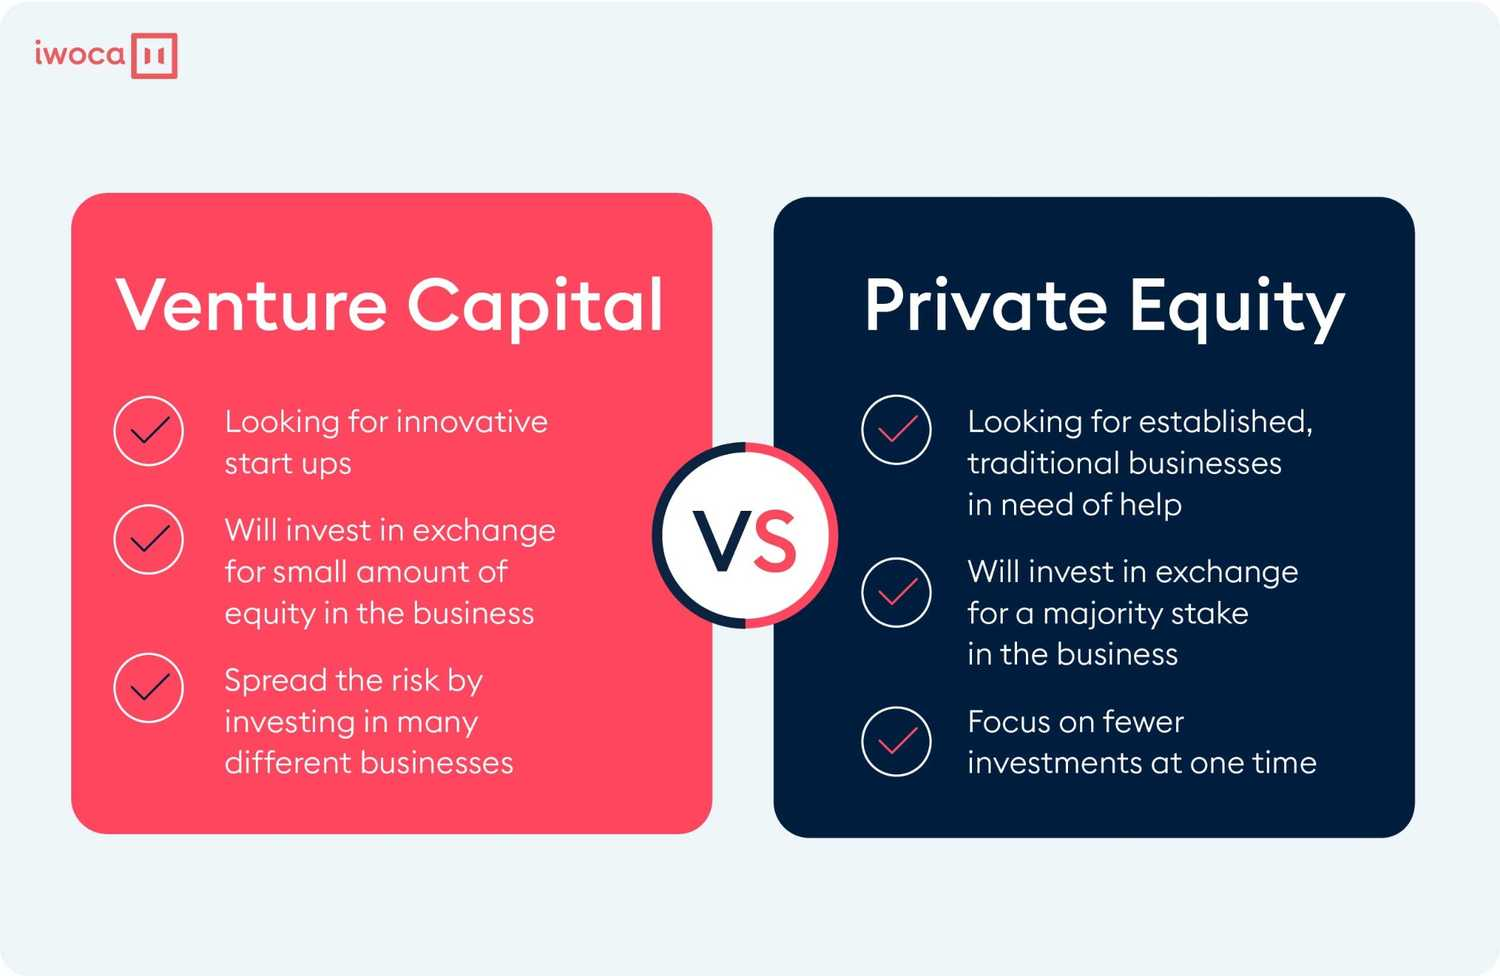 difference between private equity and venture capital